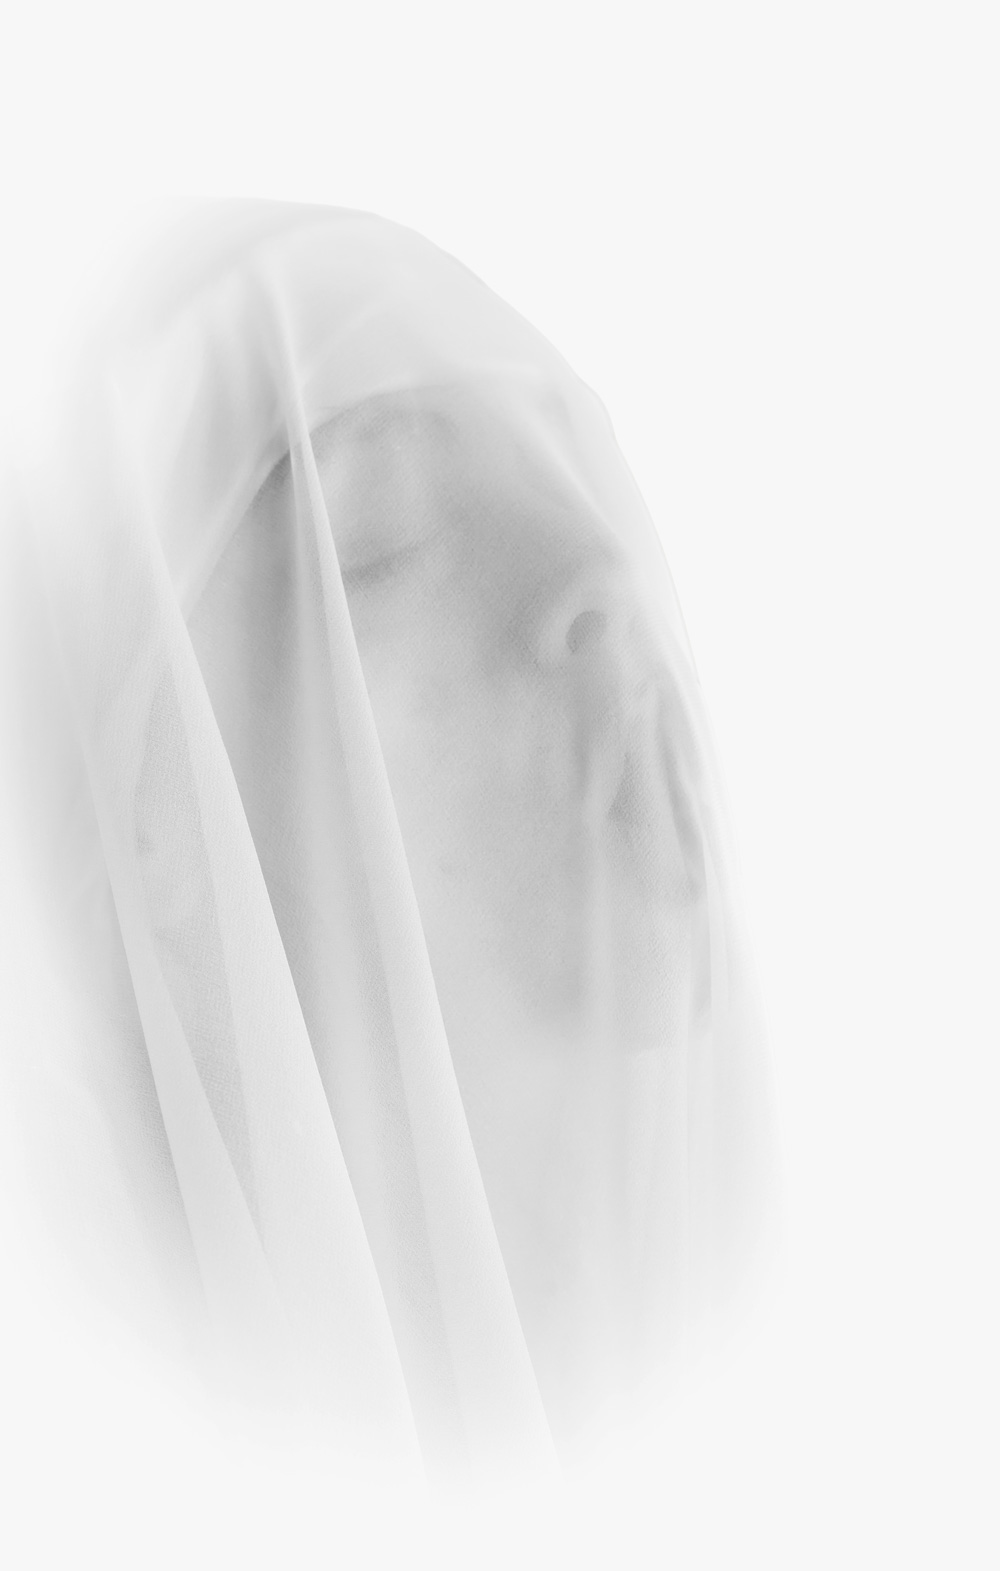 ©robertospotti-woman-with-veil